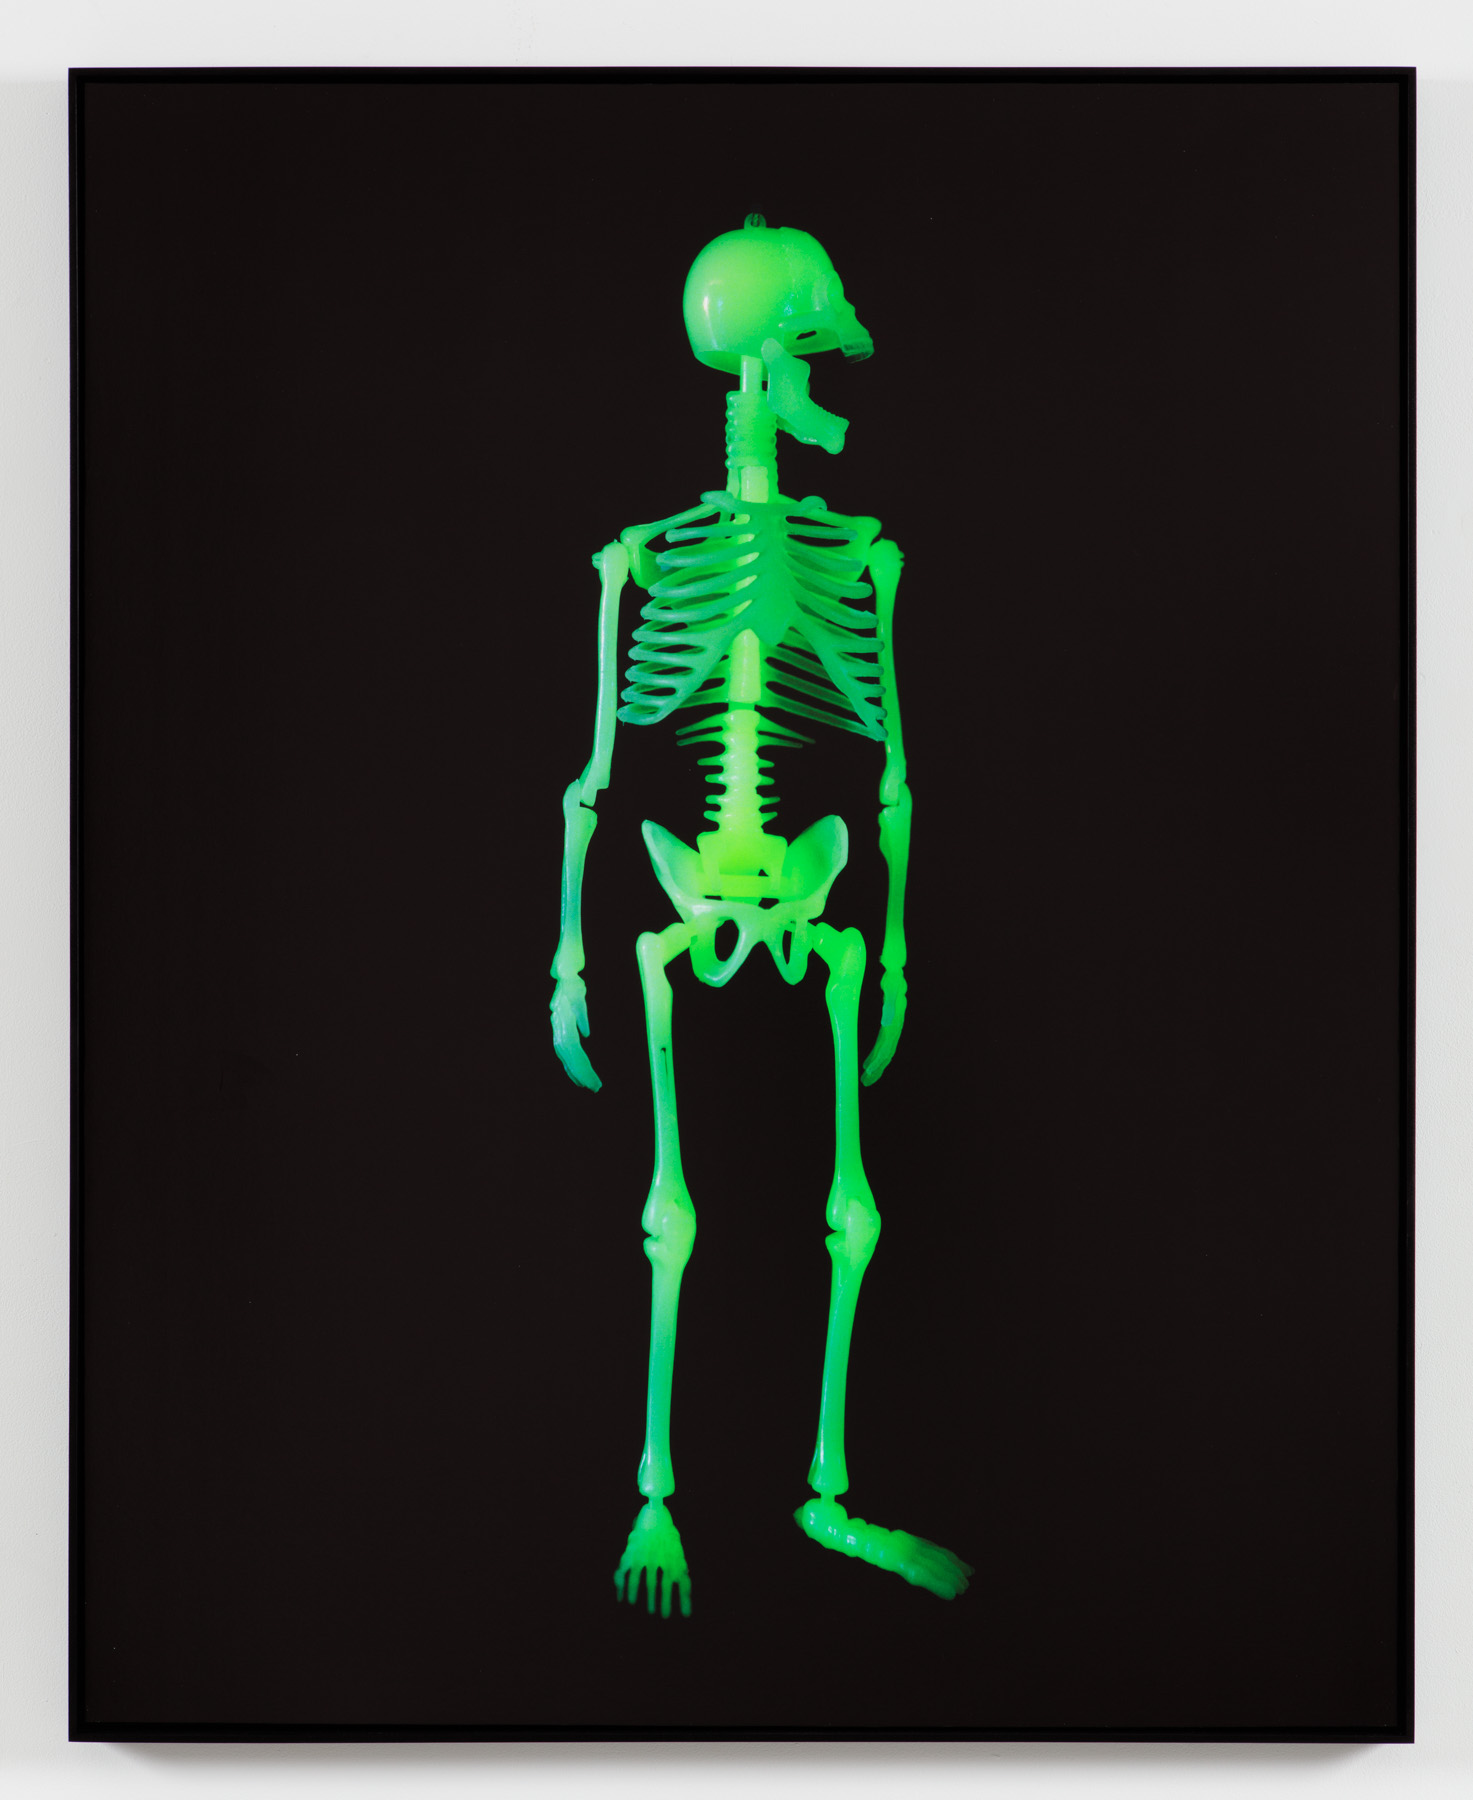 Inner Glow   Archival Inkjet Print  40 x 50 inches  edition of 3 + AP  2016